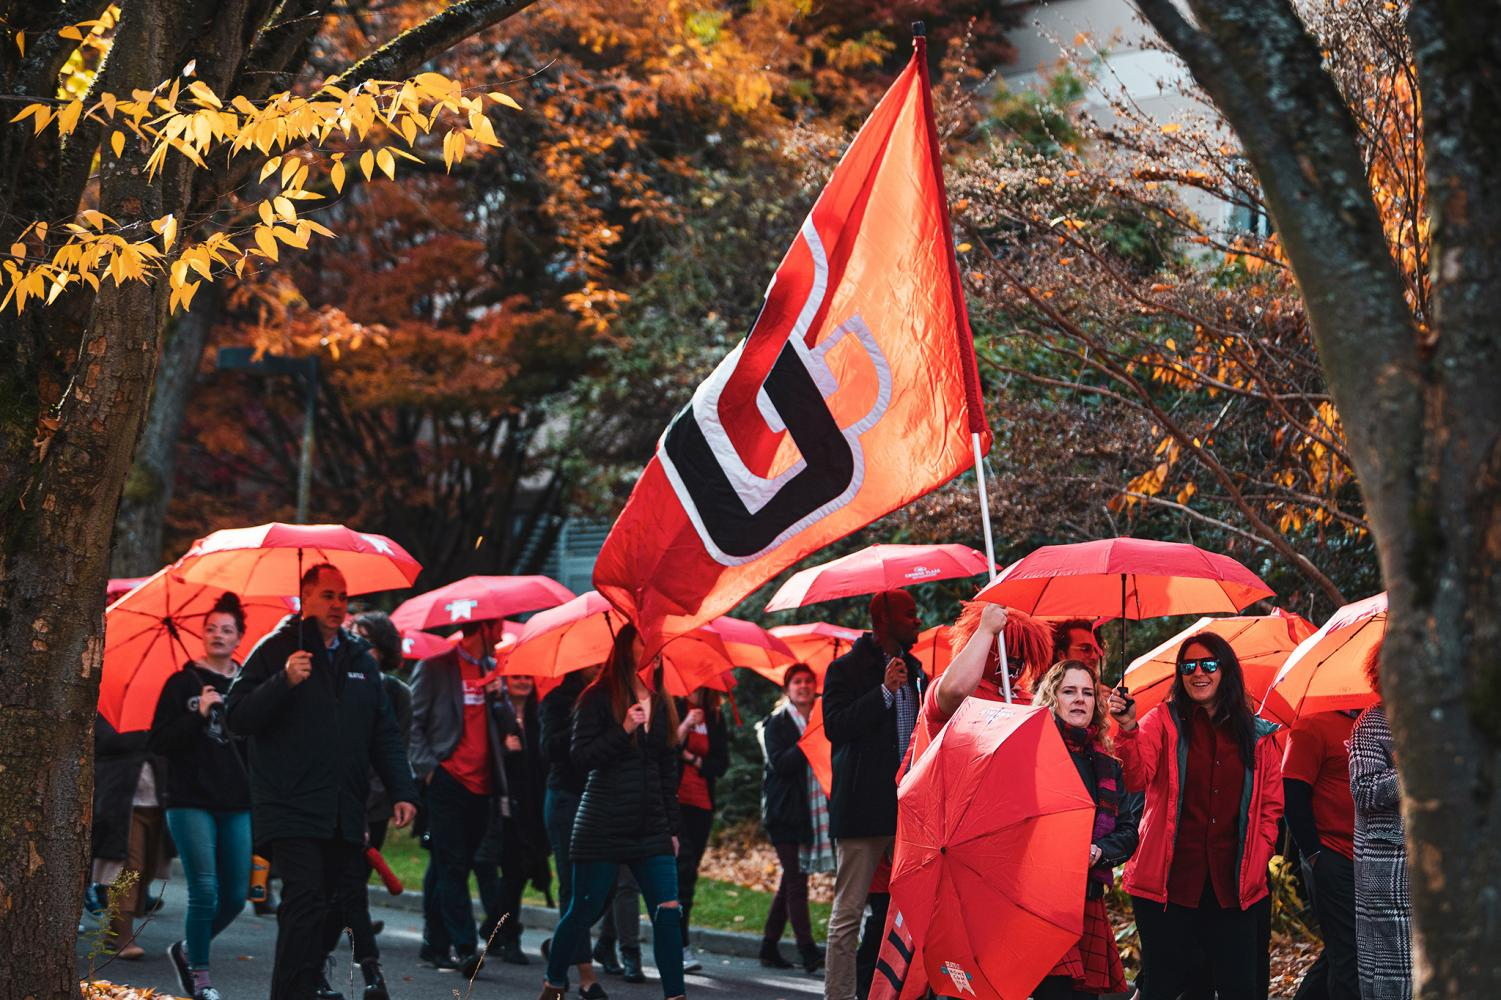 Seattle U community members march in the Red Umbrella Parade during Homecoming Week.